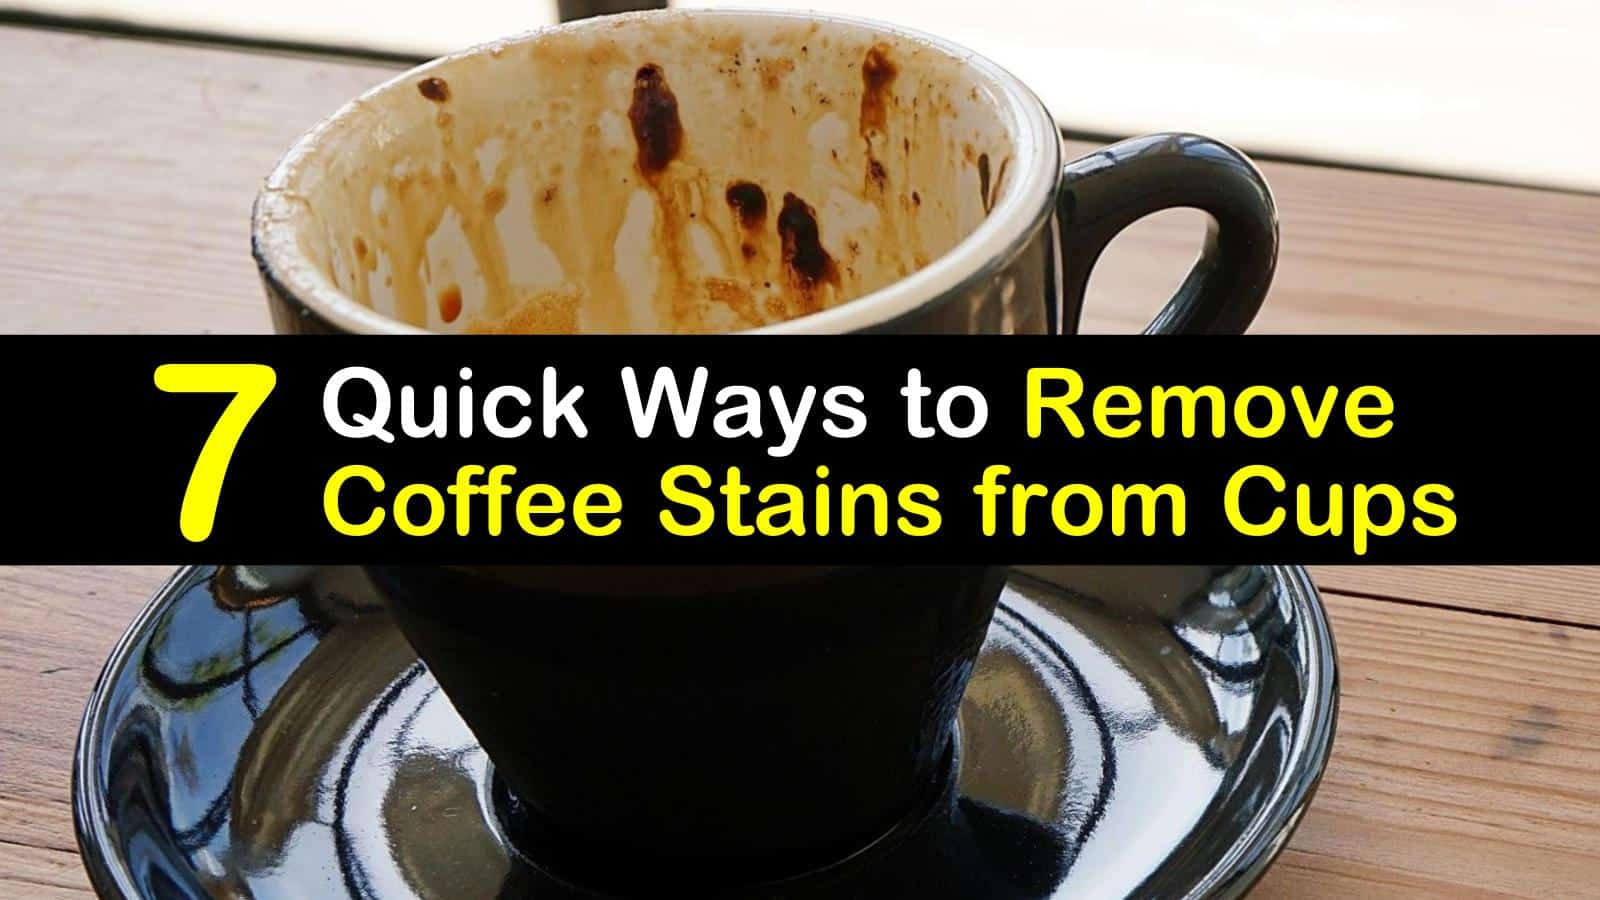 how to remove coffee stains from cups titleimg1